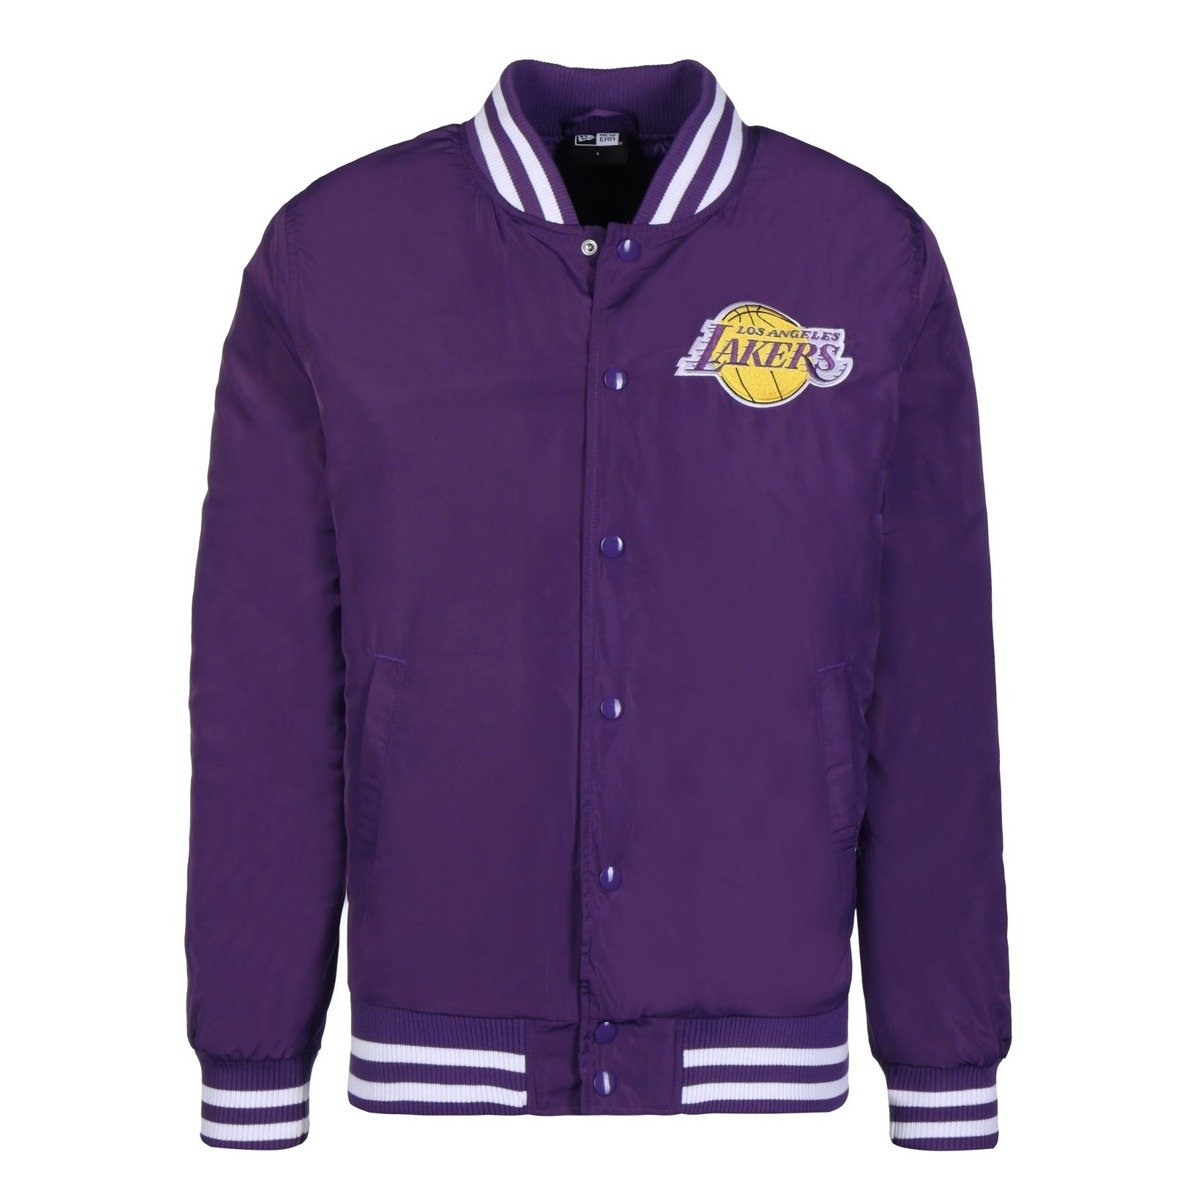 Los Angeles Lakers Giacca NEW ERA 11788928 Clicca per espandere ... 48759aeb2110